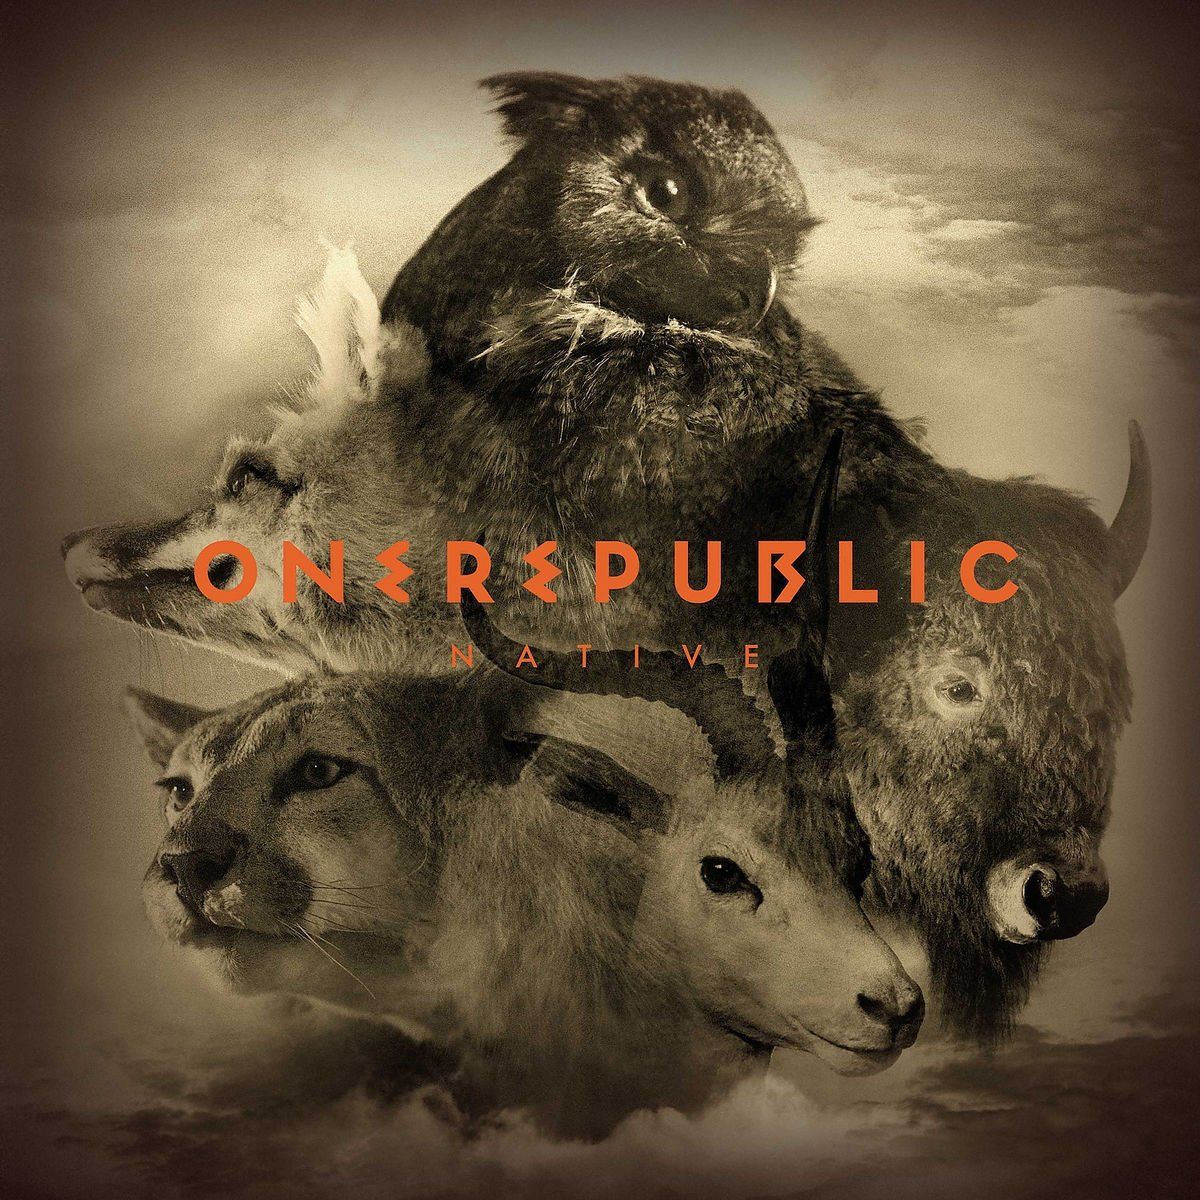 Vinilo : OneRepublic - Native (2 Disc)